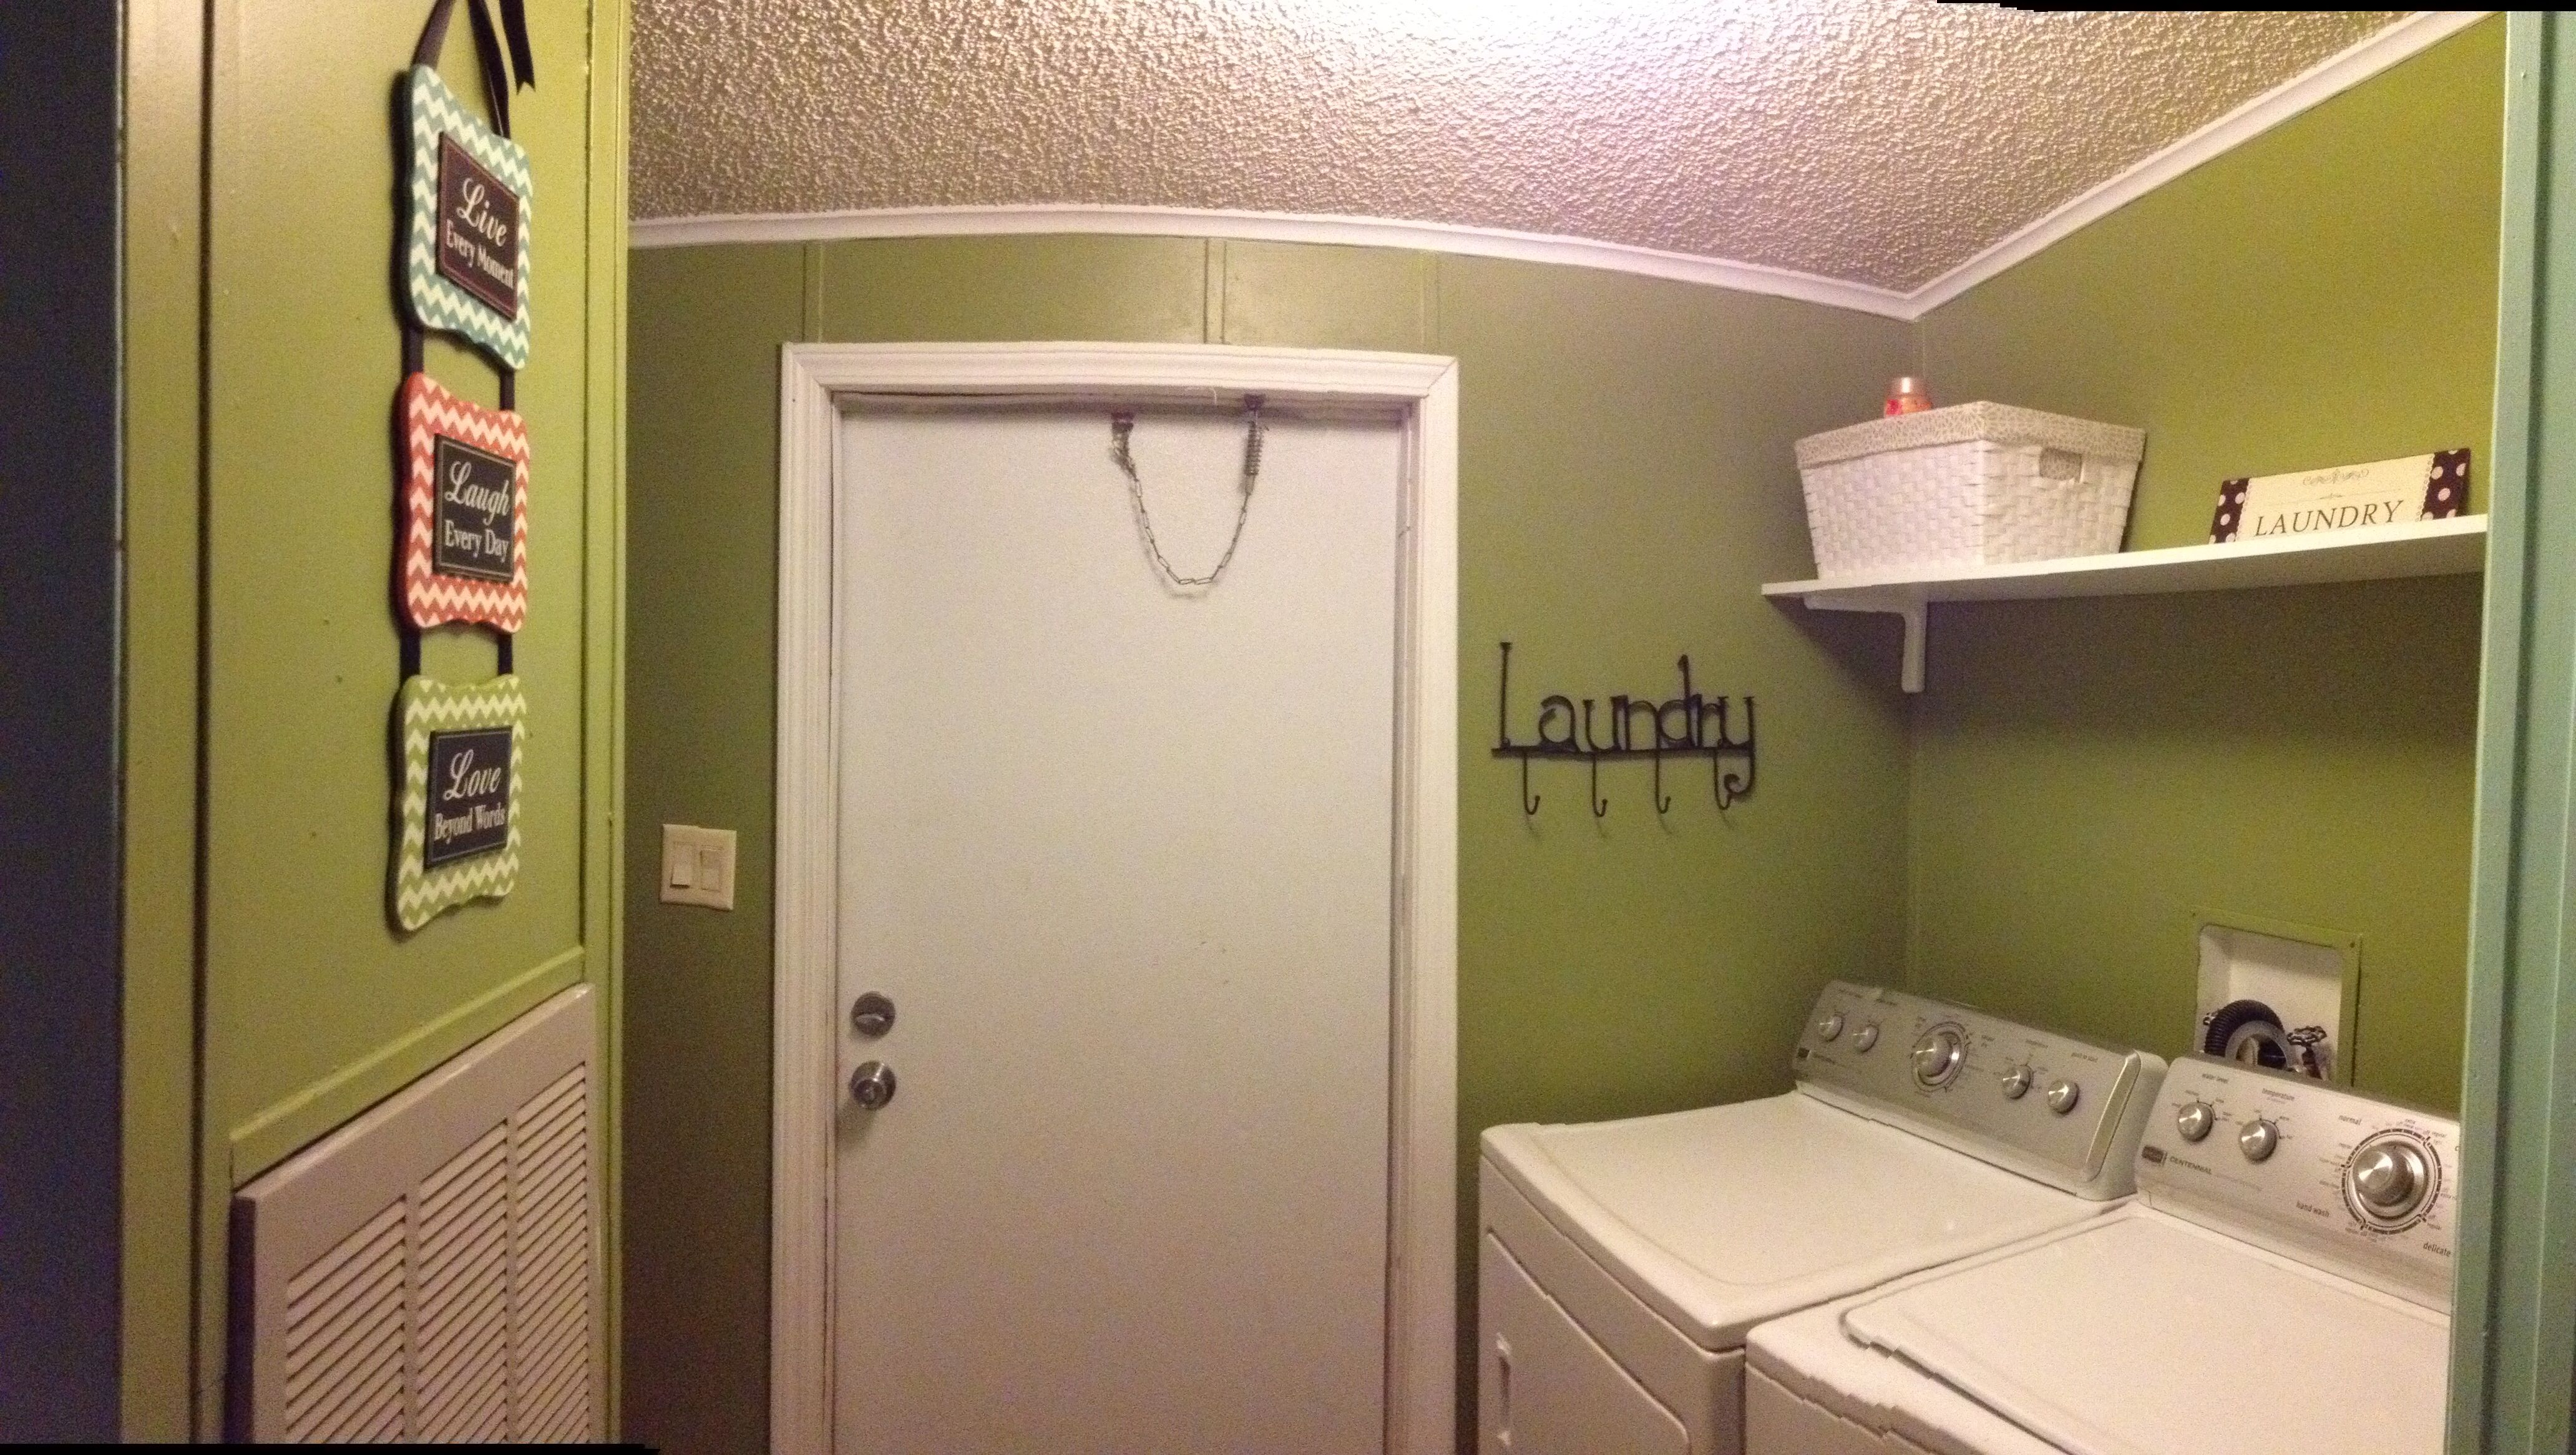 Olive Green Laundry Room